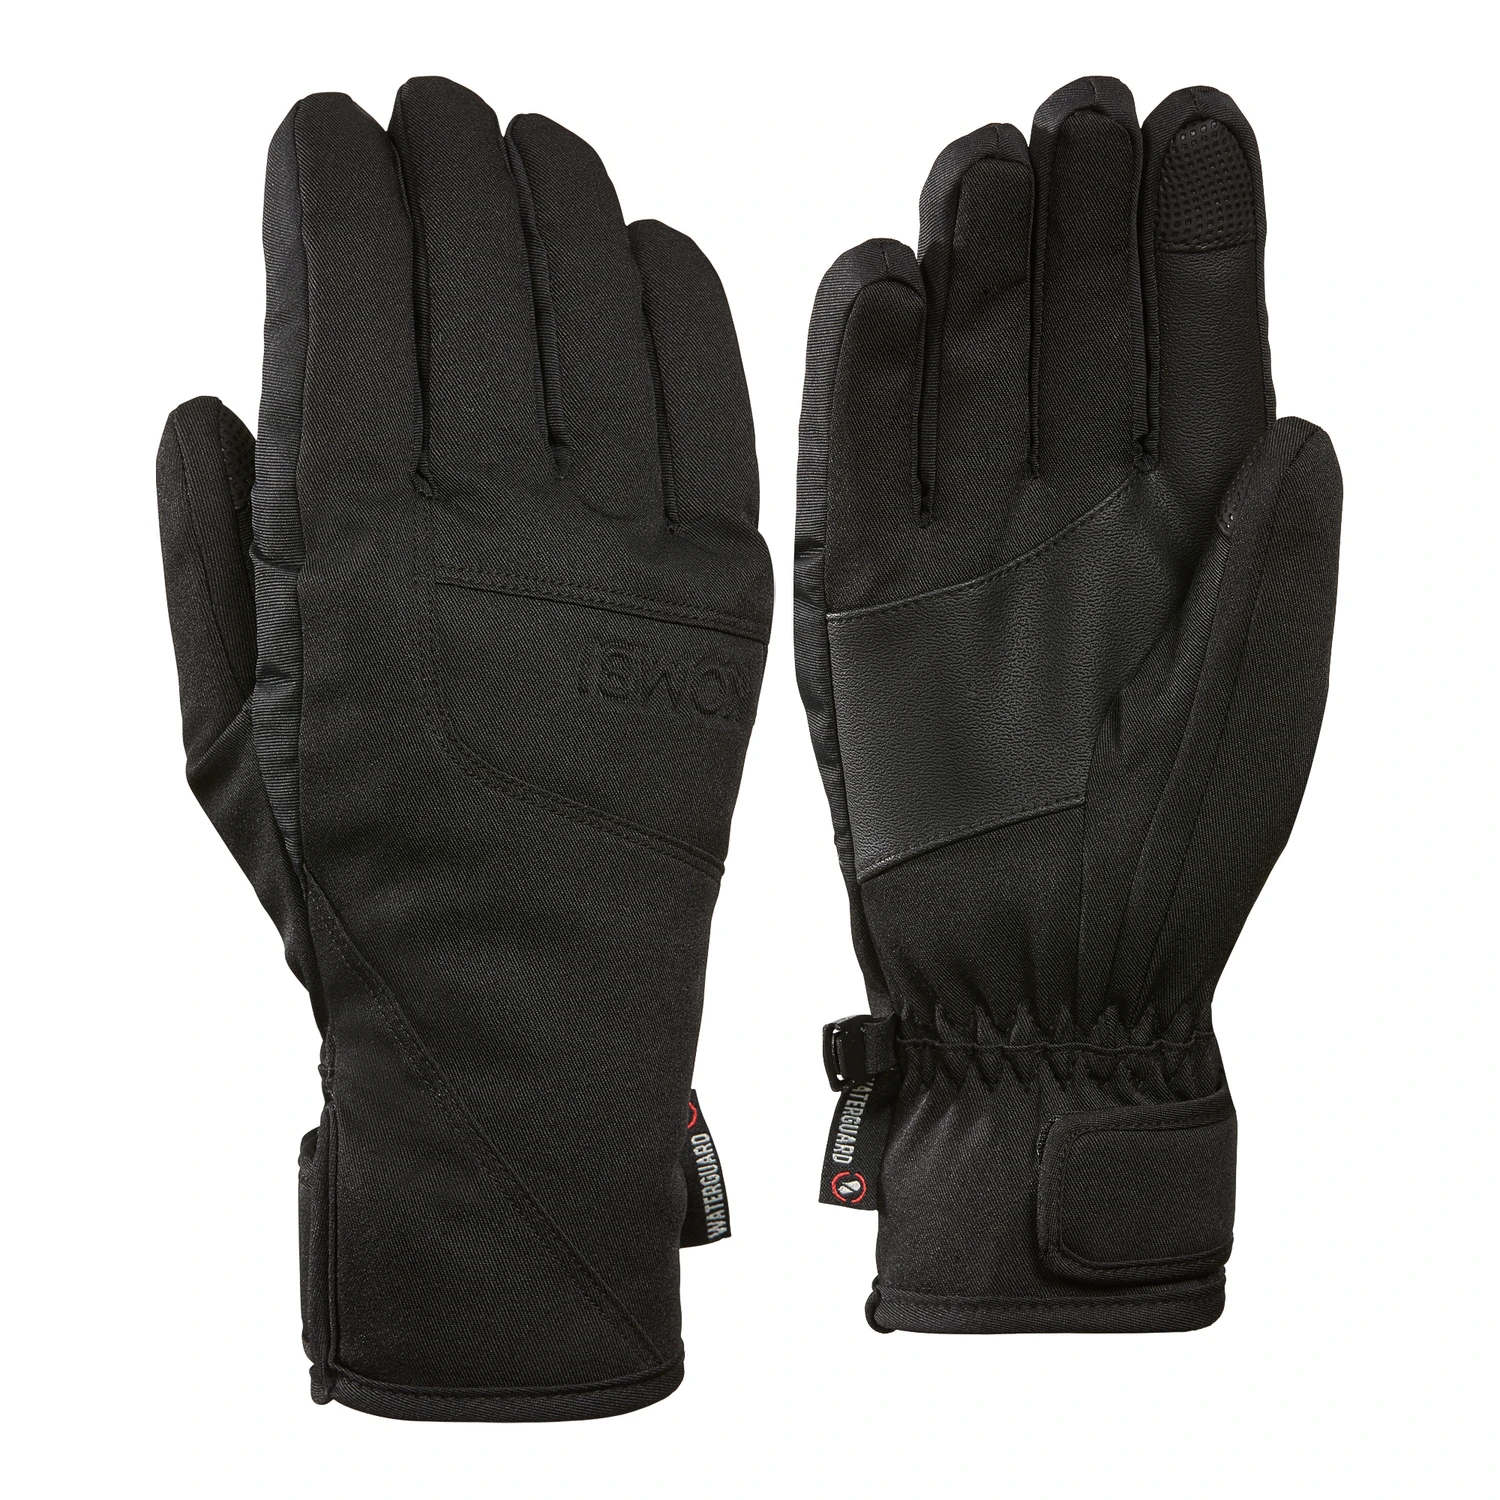 Kombi Traveller Glove - Men's